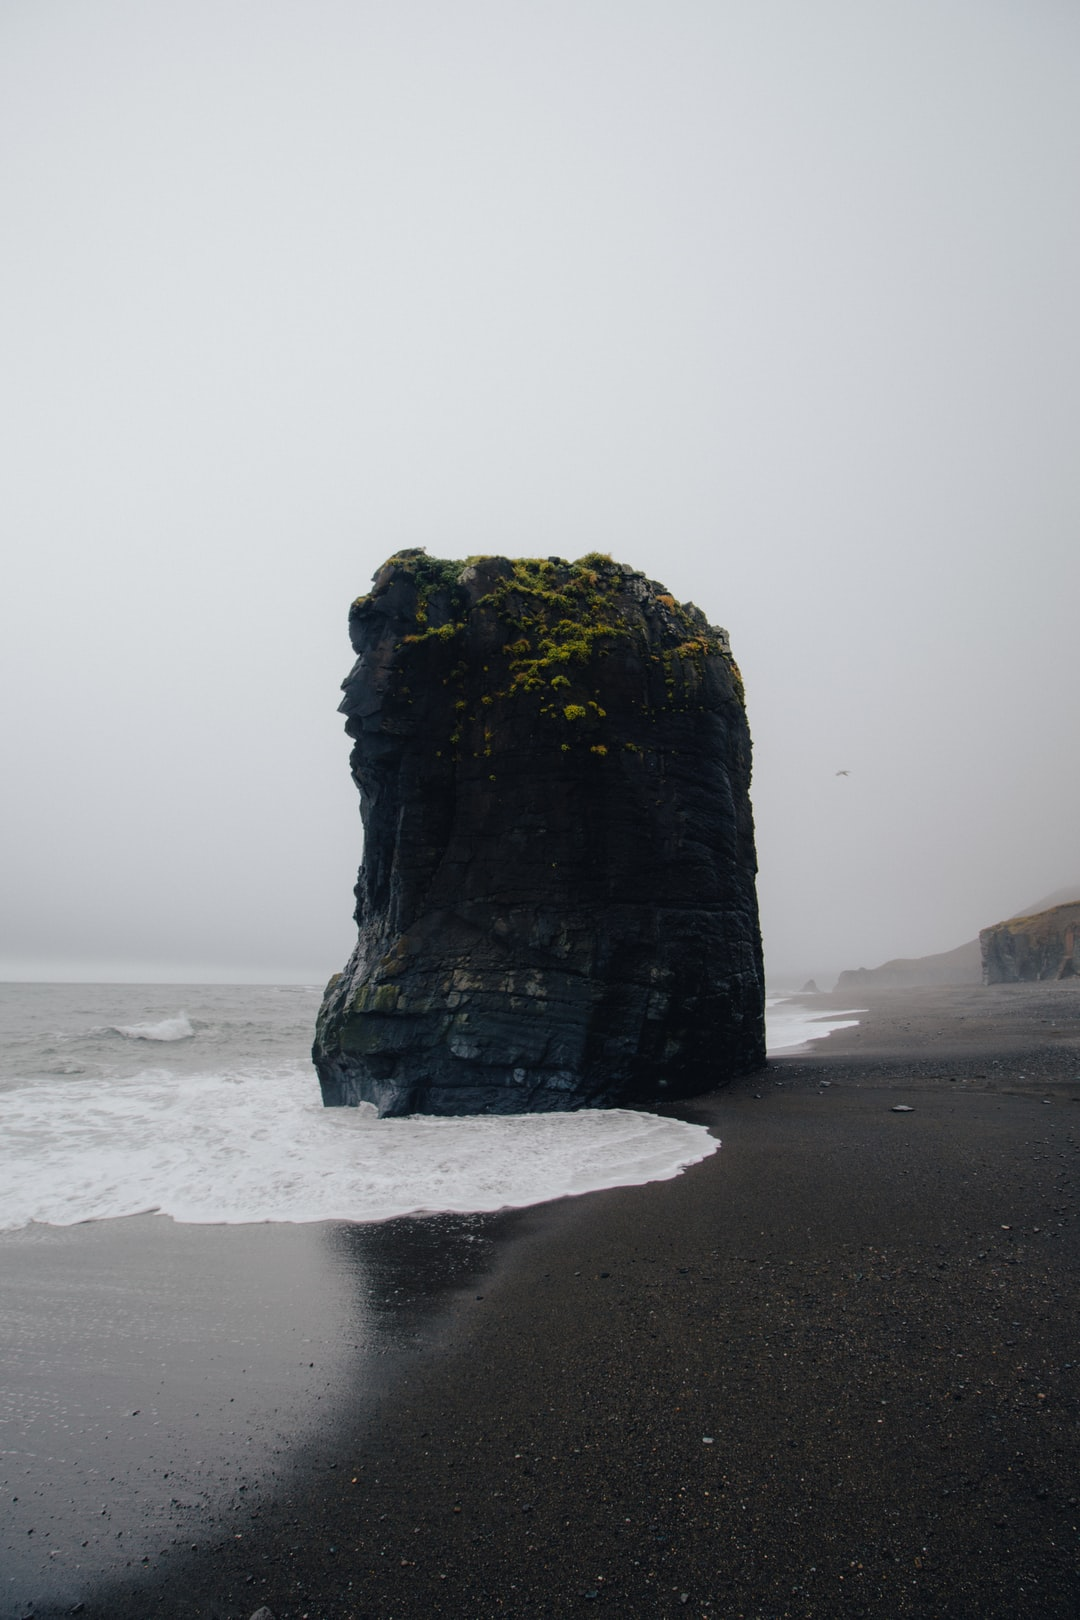 A stubborn rock stands tall in the middle of a black sand beach in Iceland.